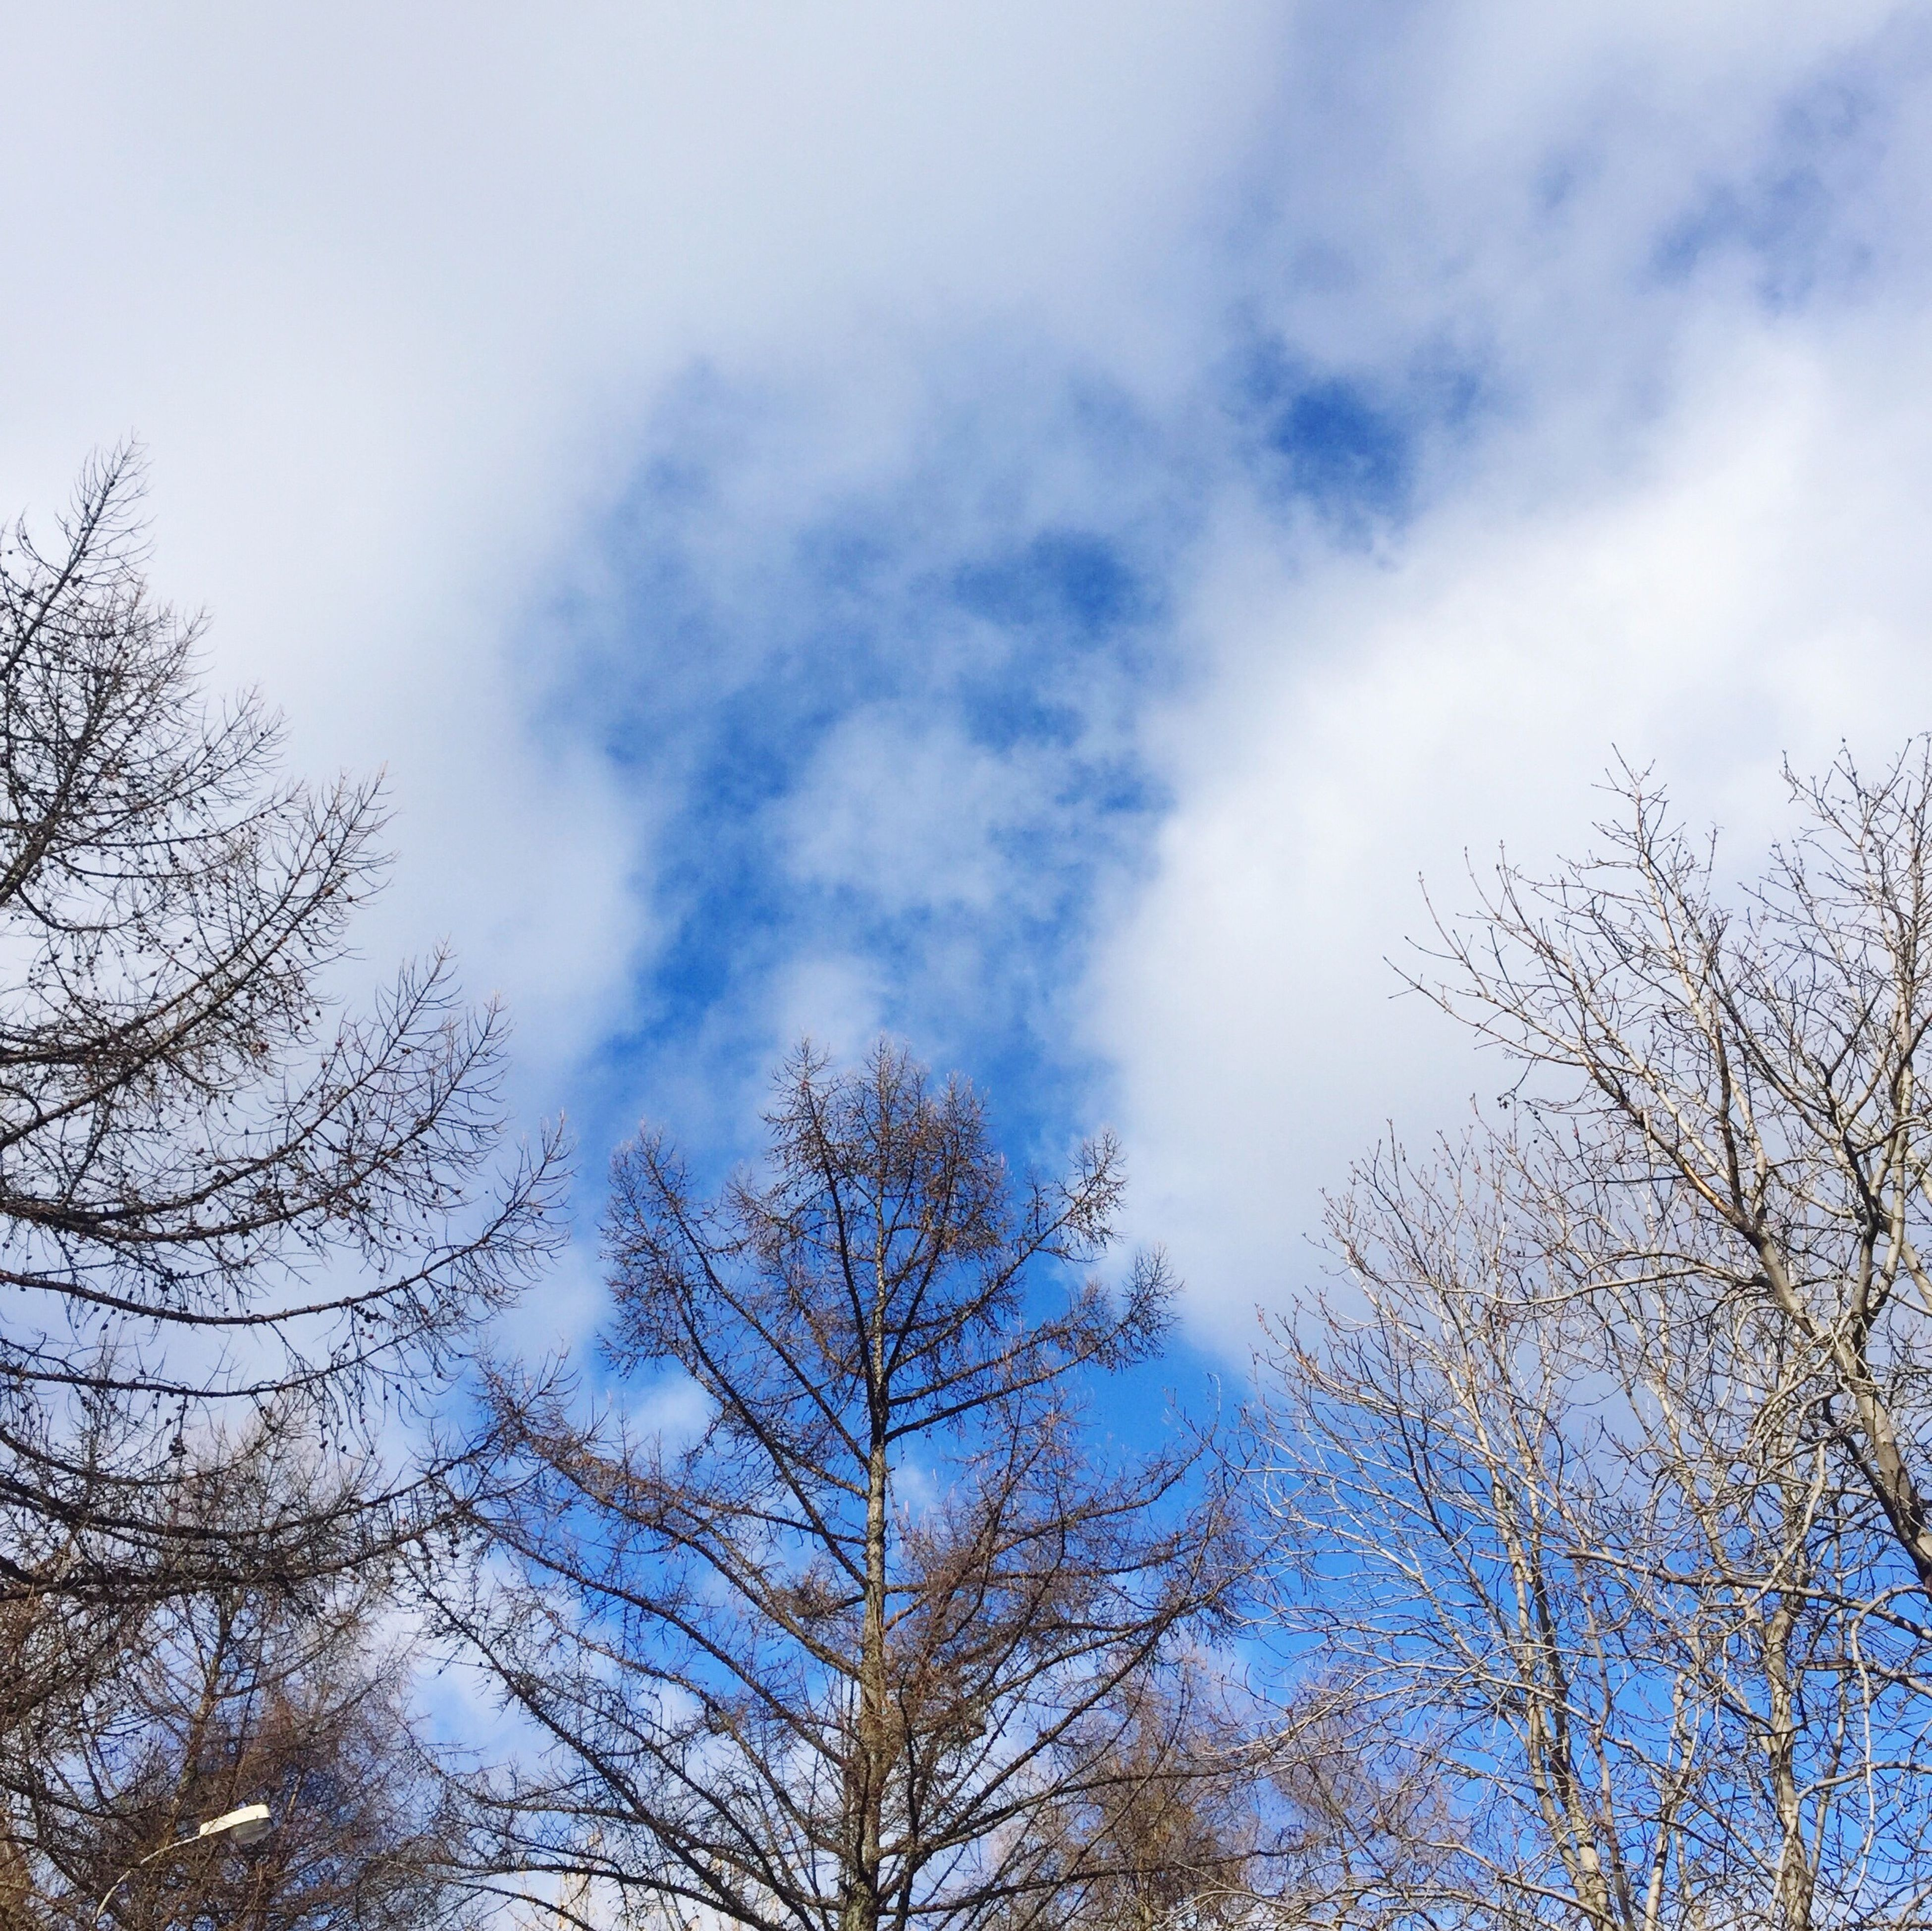 sky, tree, low angle view, nature, growth, no people, cloud - sky, beauty in nature, outdoors, day, tranquility, branch